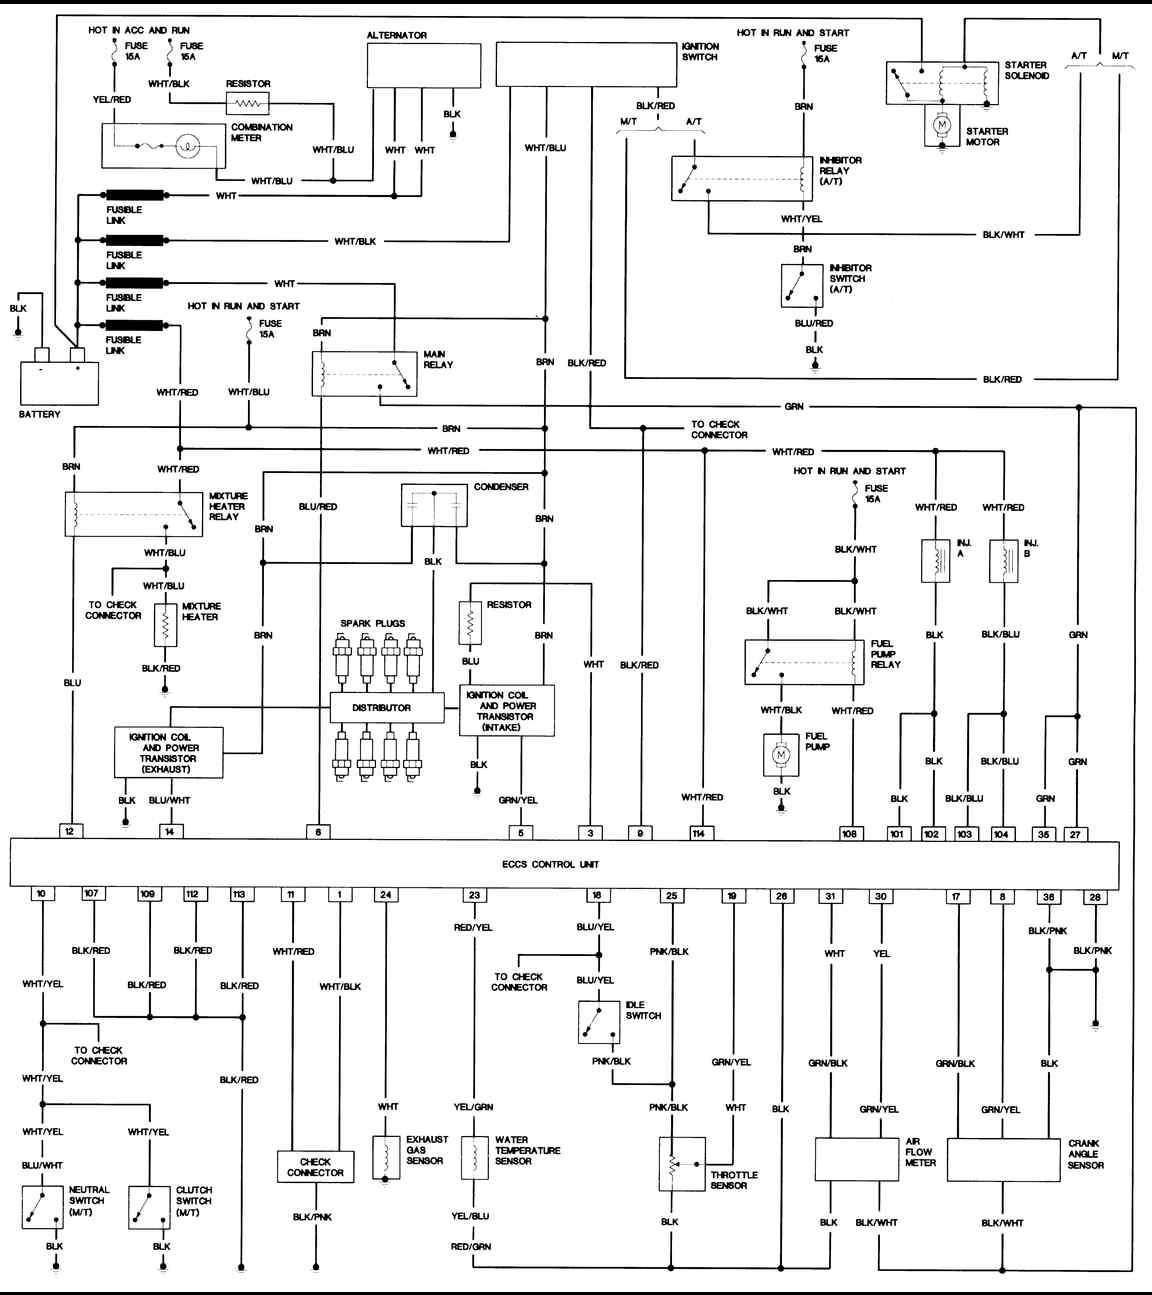 i am trying to get the electrical diagram for a 1986 d 21 nissan graphic